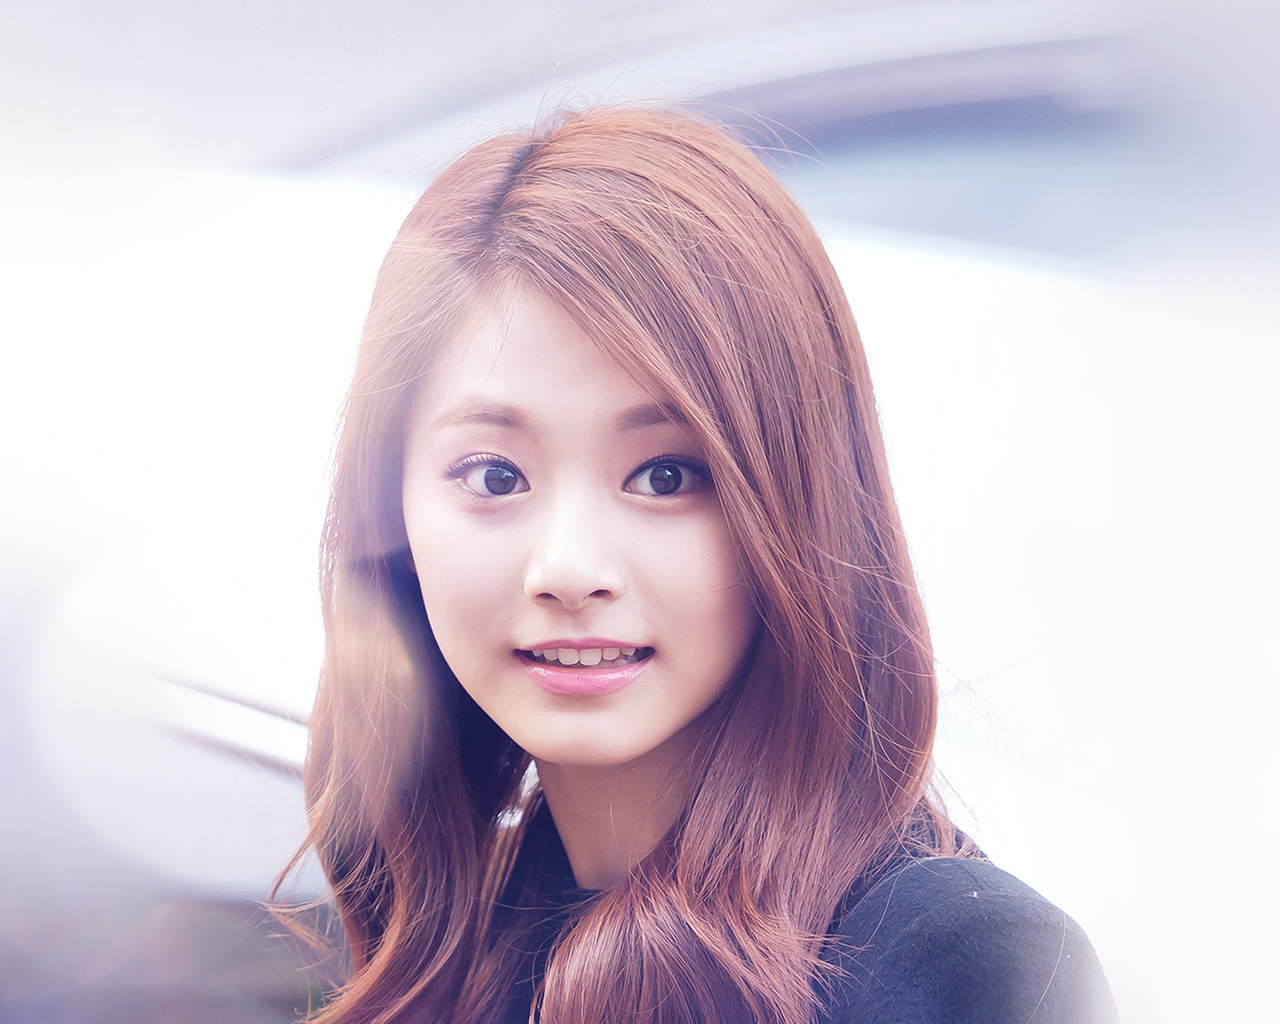 Happy Fall Wallpaper Iphone Hh33 Tzuyu Twice Smile Cute Kpop Jyp Flare Wallpaper